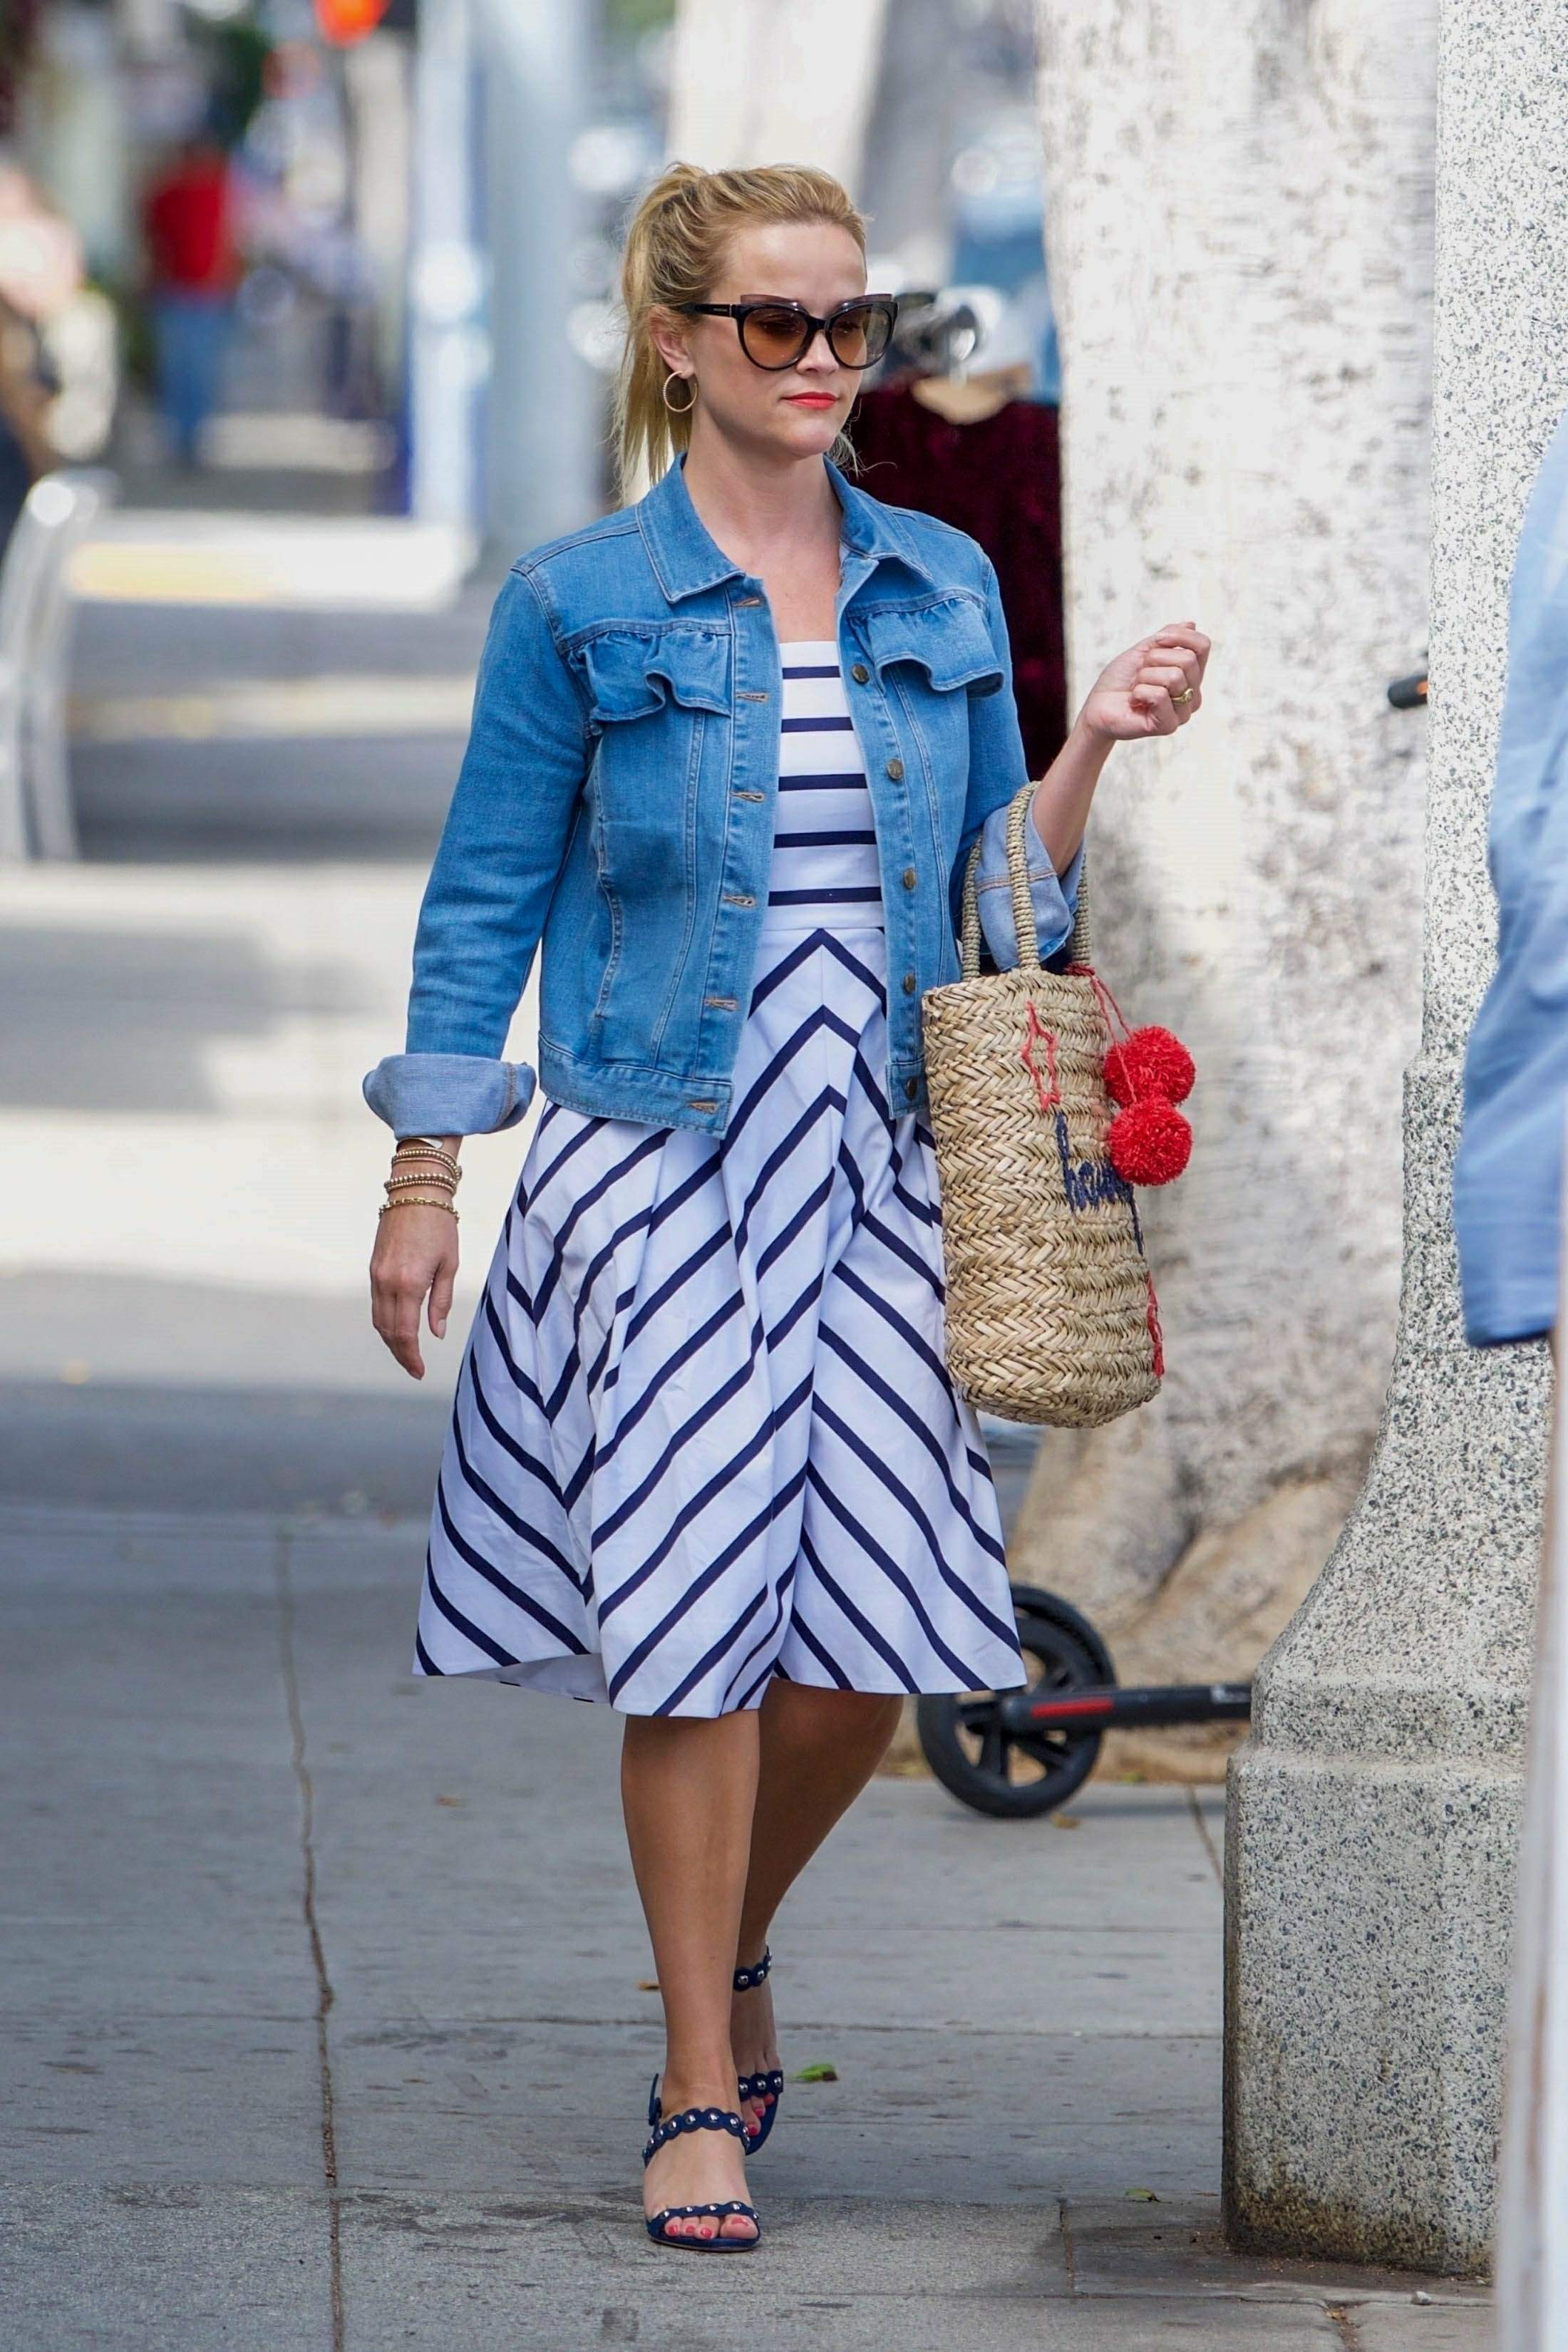 74542042 reese witherspoon 02072018 p 06